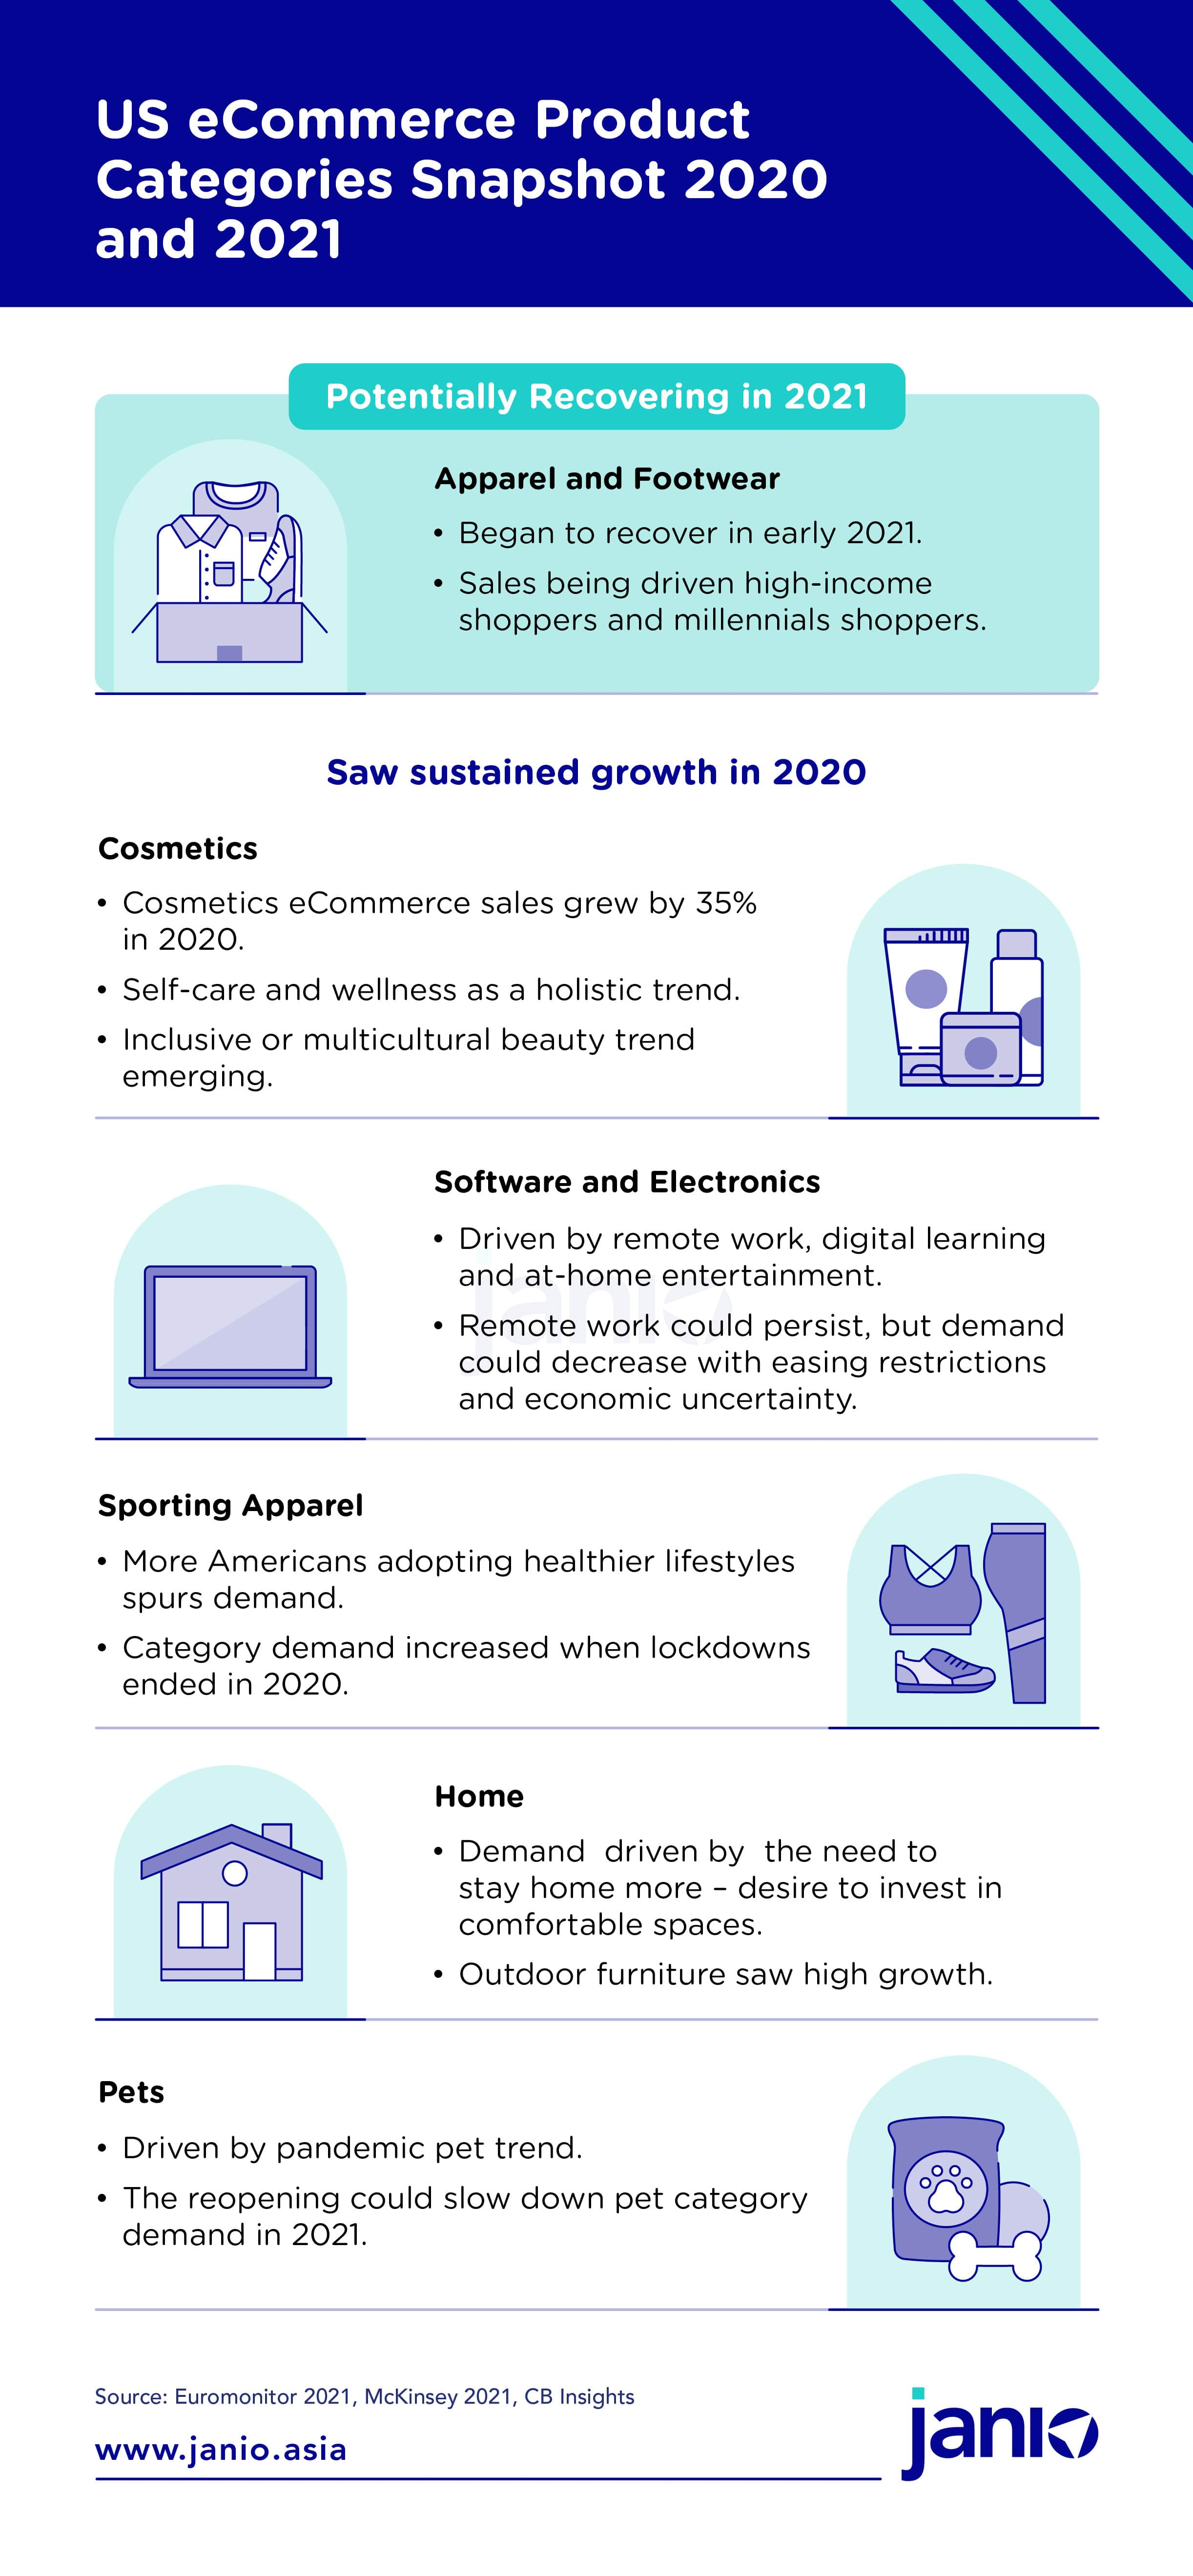 us-ecommerce-product-categories-snapshot-2020-and-2021-infographic-3-min.jpg